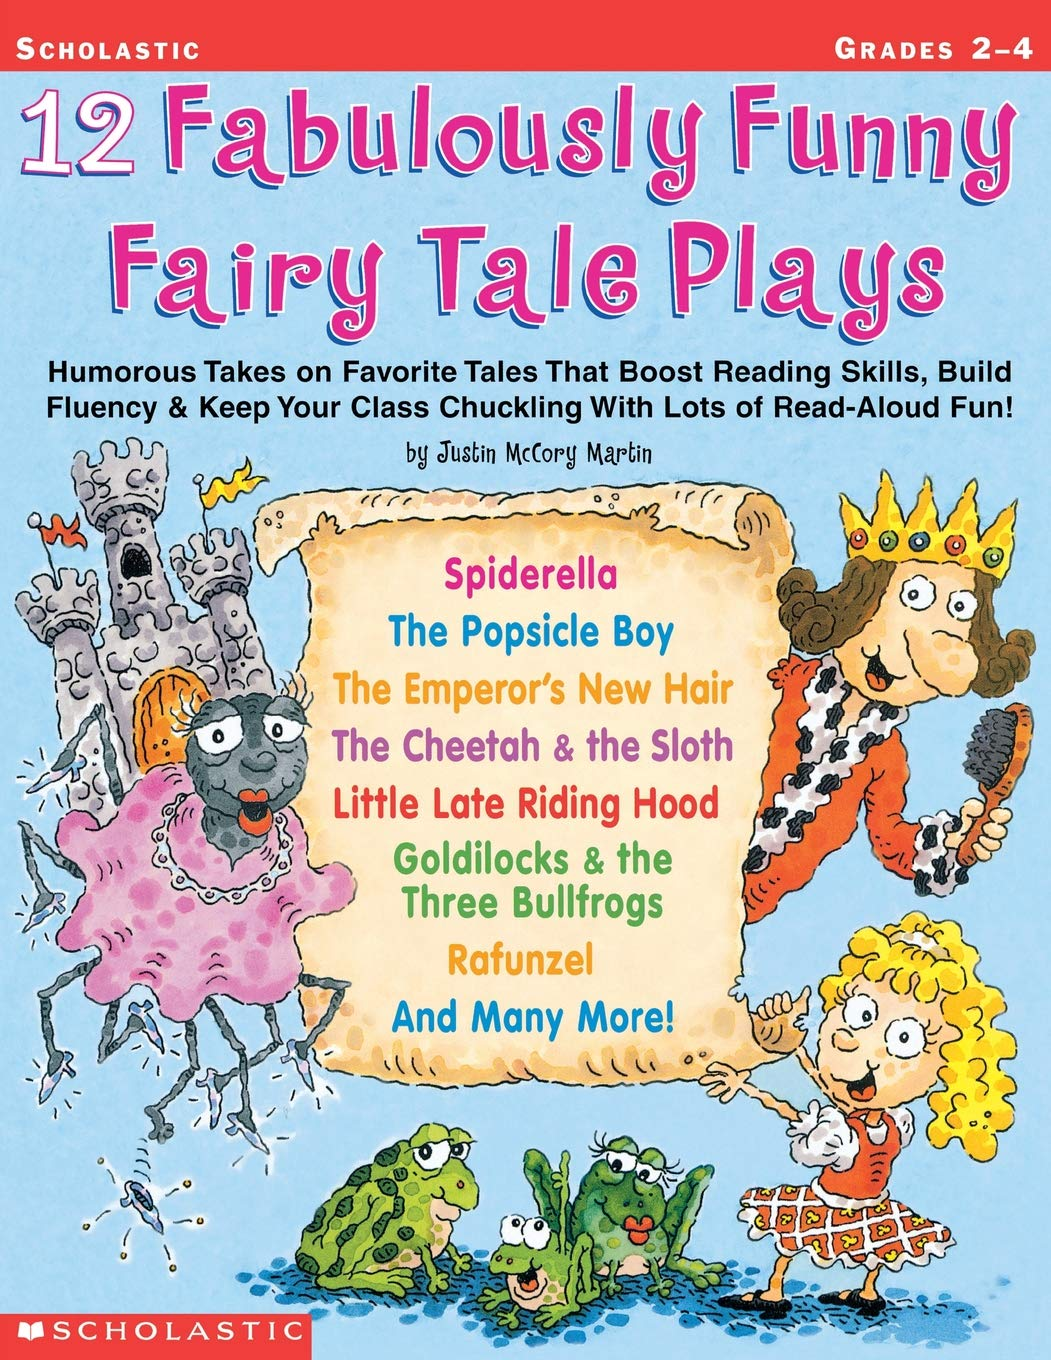 12 Fabulously Funny Fairy Tale Plays: Humorous Takes on Favorite Tales That Boost Reading Skills, Build Fluency & Keep Your Class Chuckling With Lots of Read-Aloud Fun! pdf